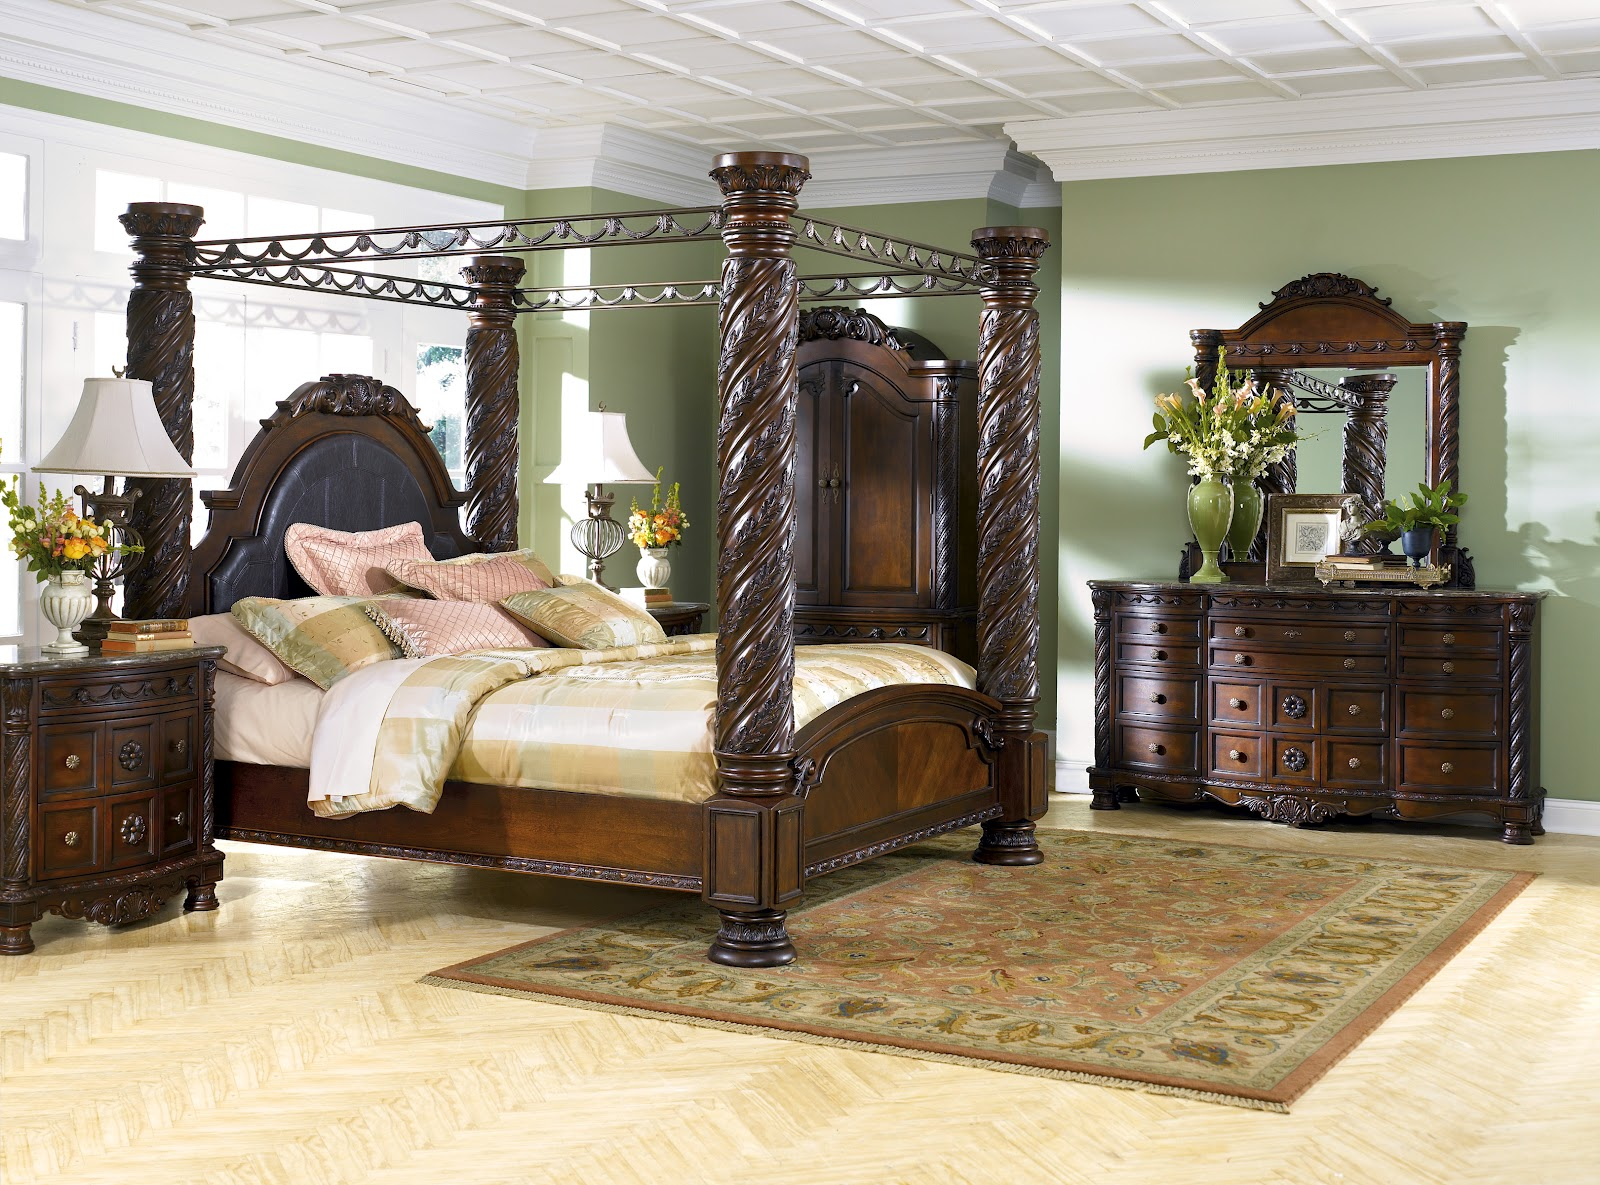 Bedroom Furniture Sets Prices The Ashley Furniture North Shore Bedroom Set Is A Collection You Most